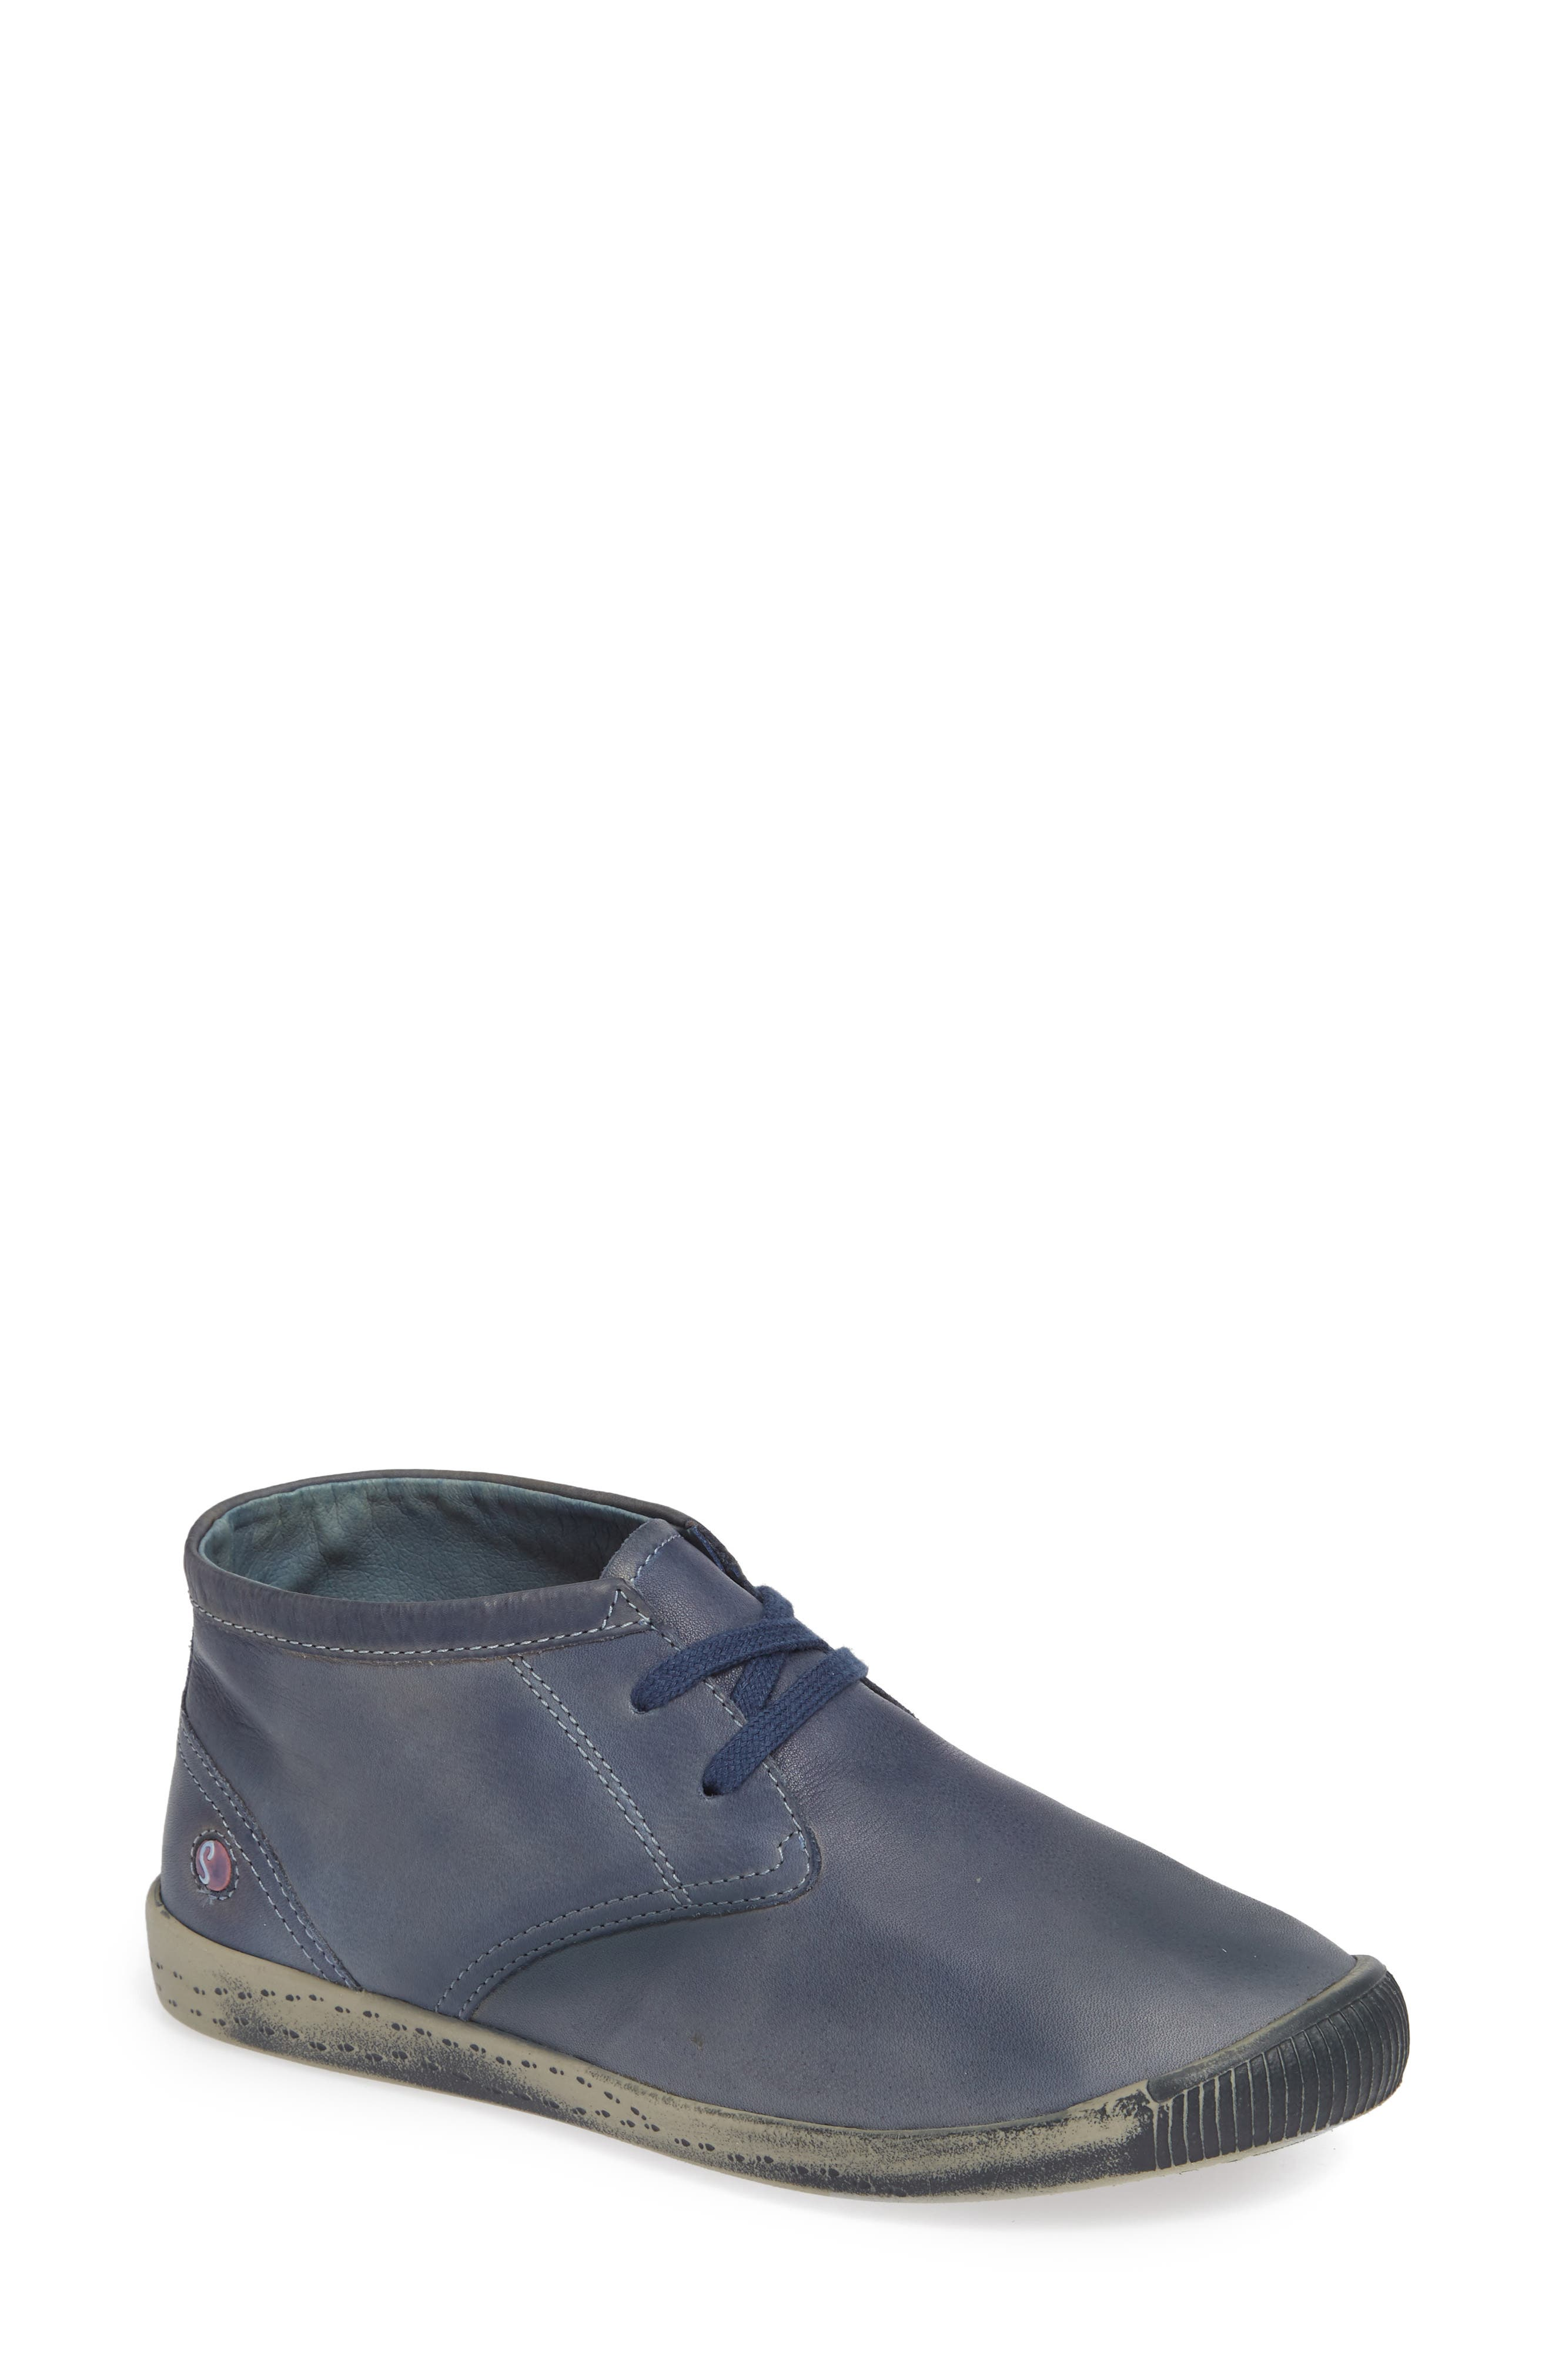 Softinos By Fly London Indira Sneaker - Blue